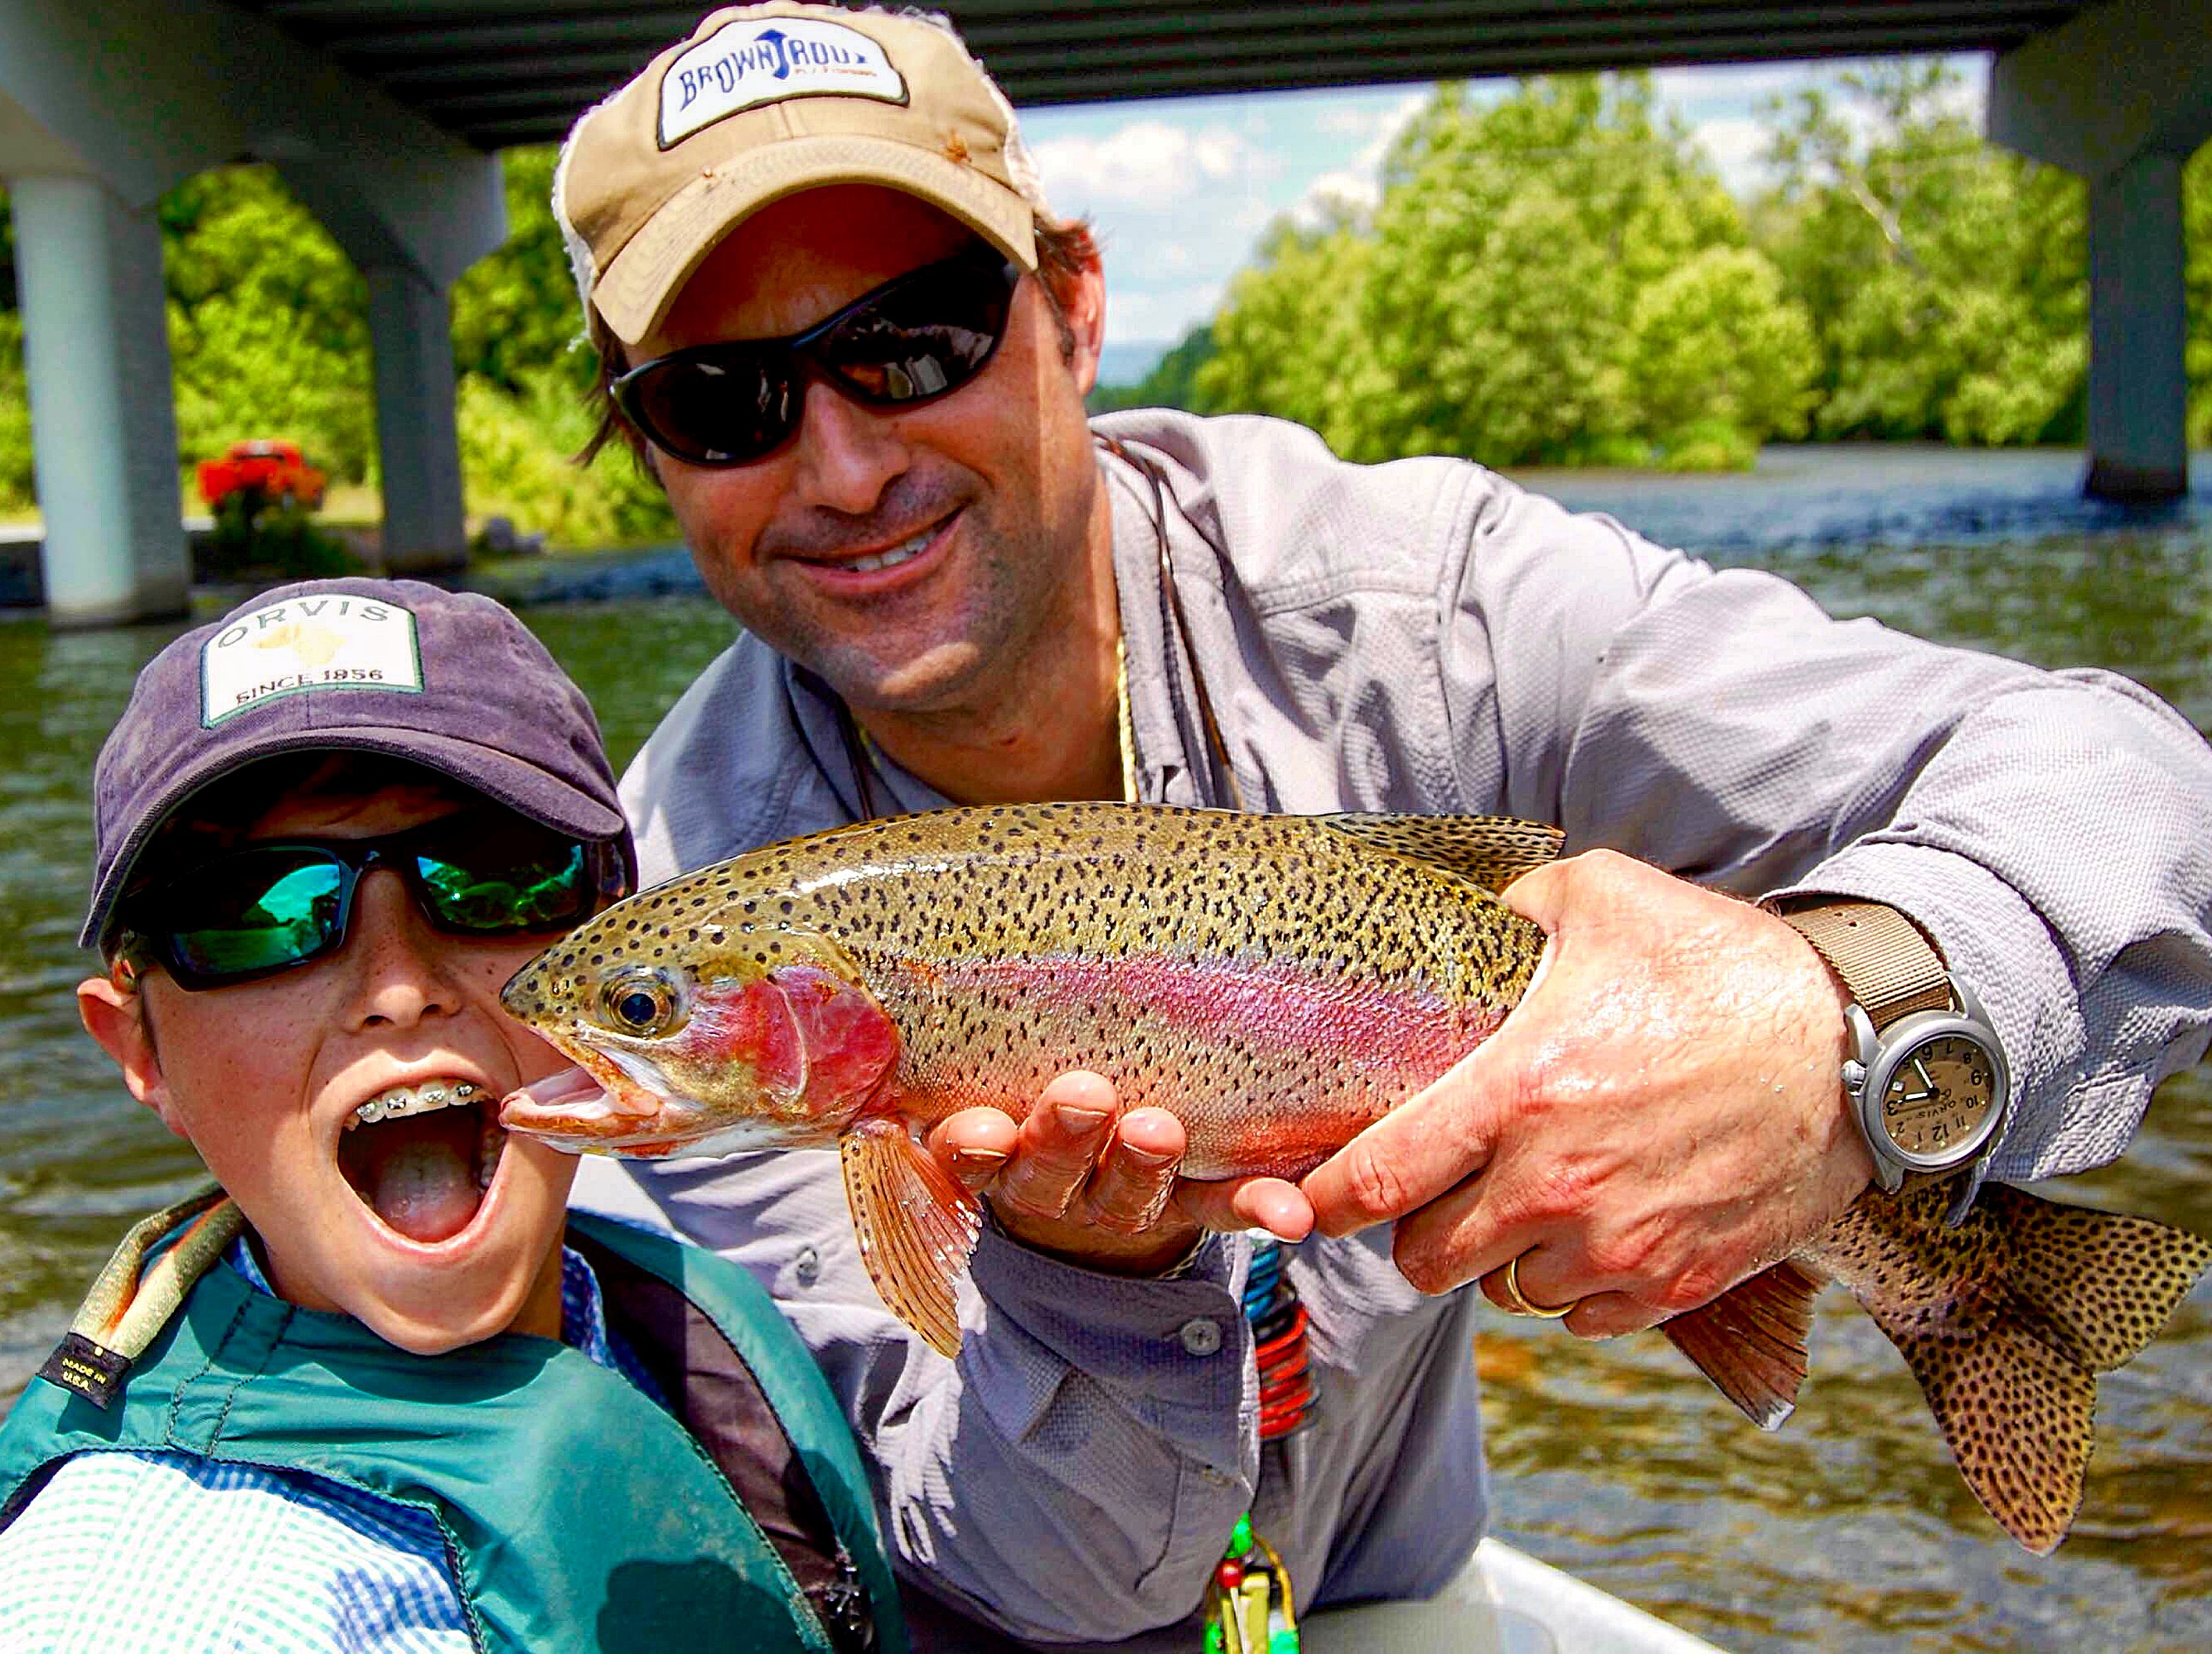 ORVIS Greenville's Fishing Manager Mark White displays a great Rainbow Trout from the Watauga River